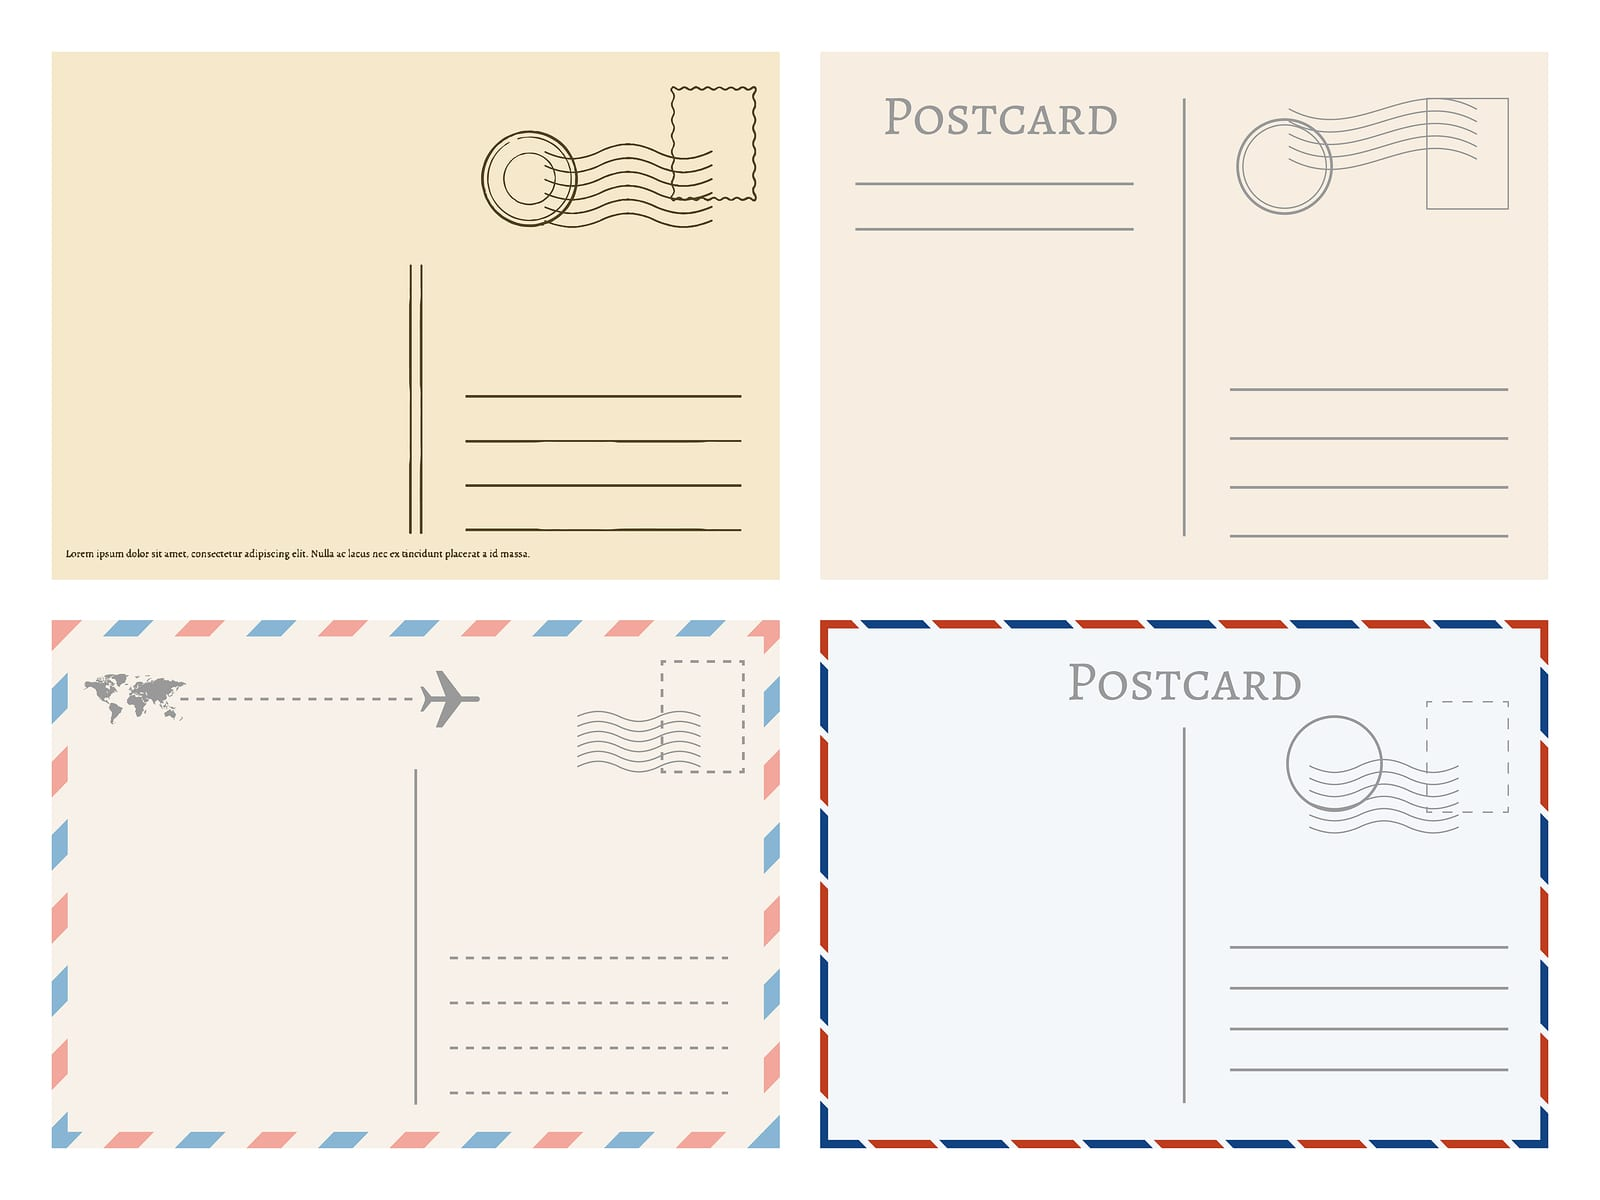 Vintage paper postal cards. Greetings from postcard vector template. Postage card, vintage post stamp, postal postmark for mail illustration